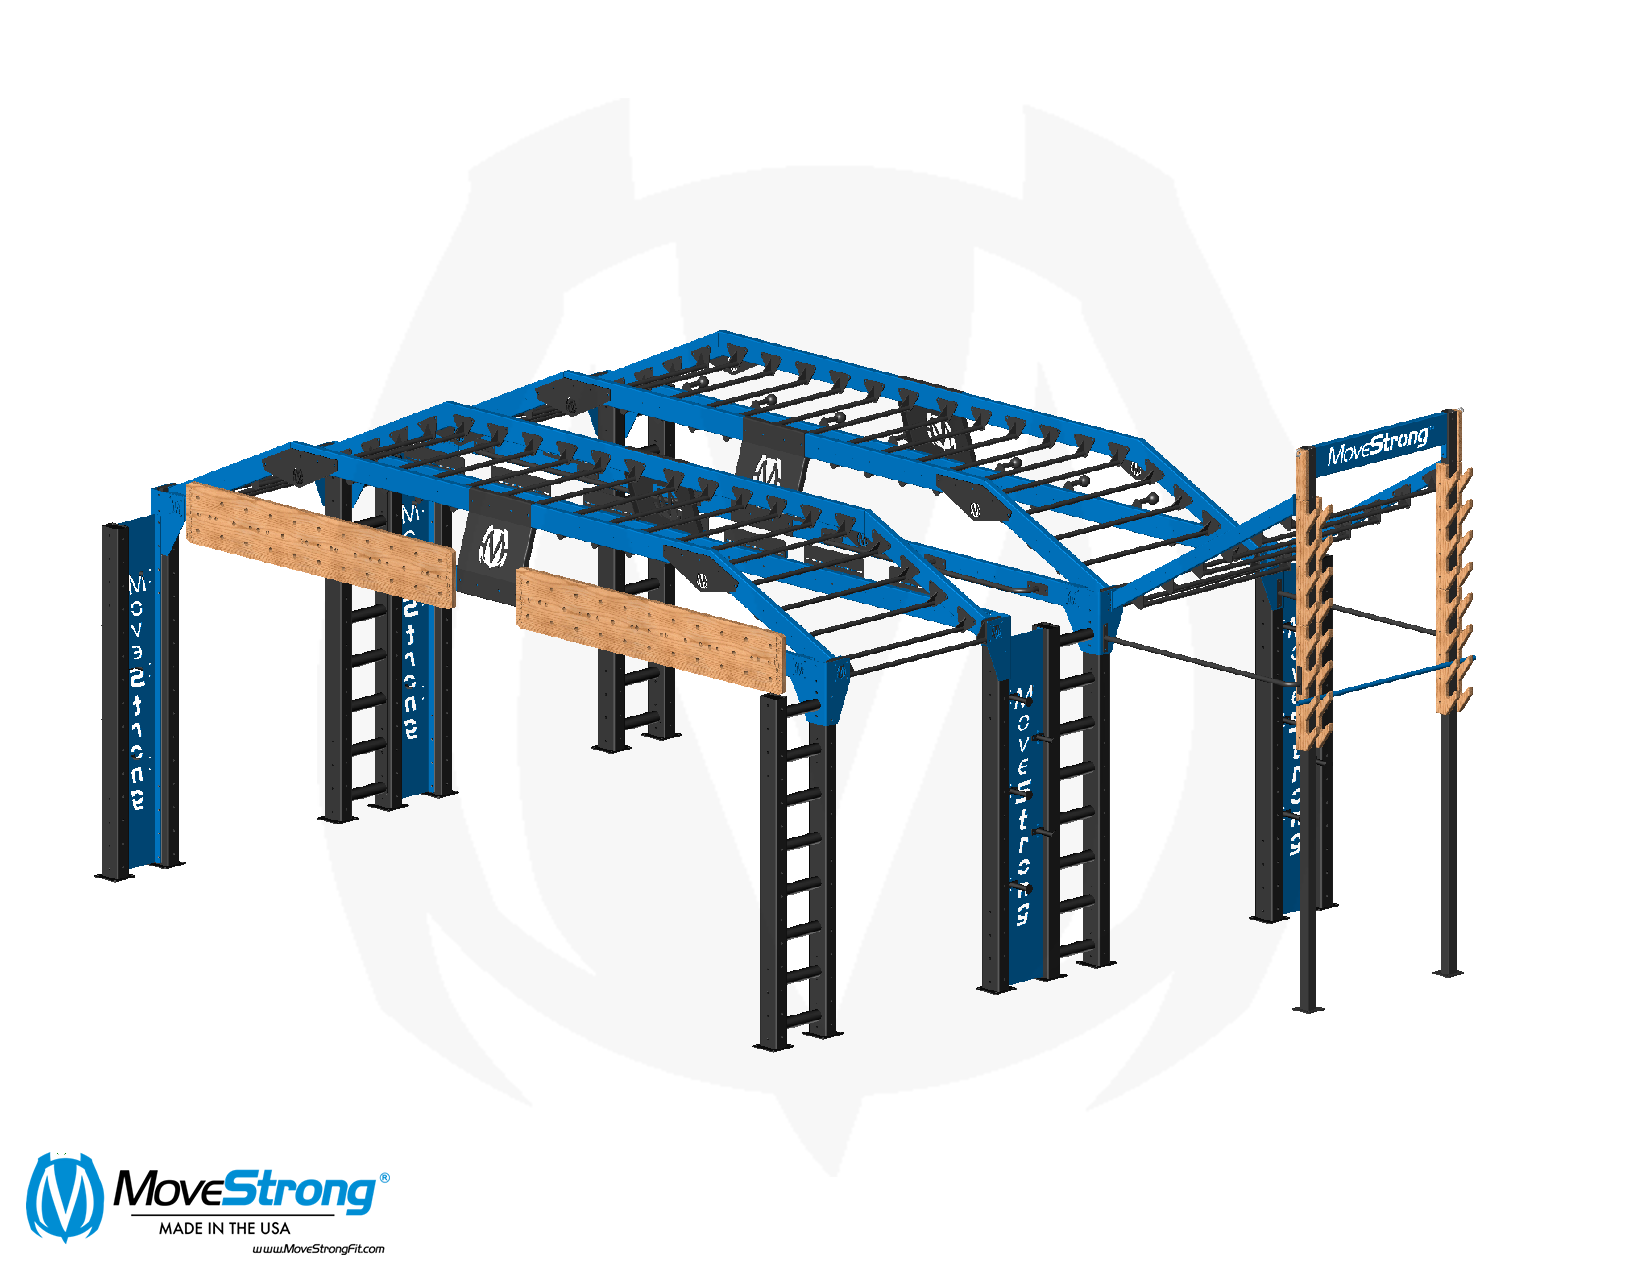 MoveStrong XL Side by Side Rack with Salmon ladder2-1_webimage.png